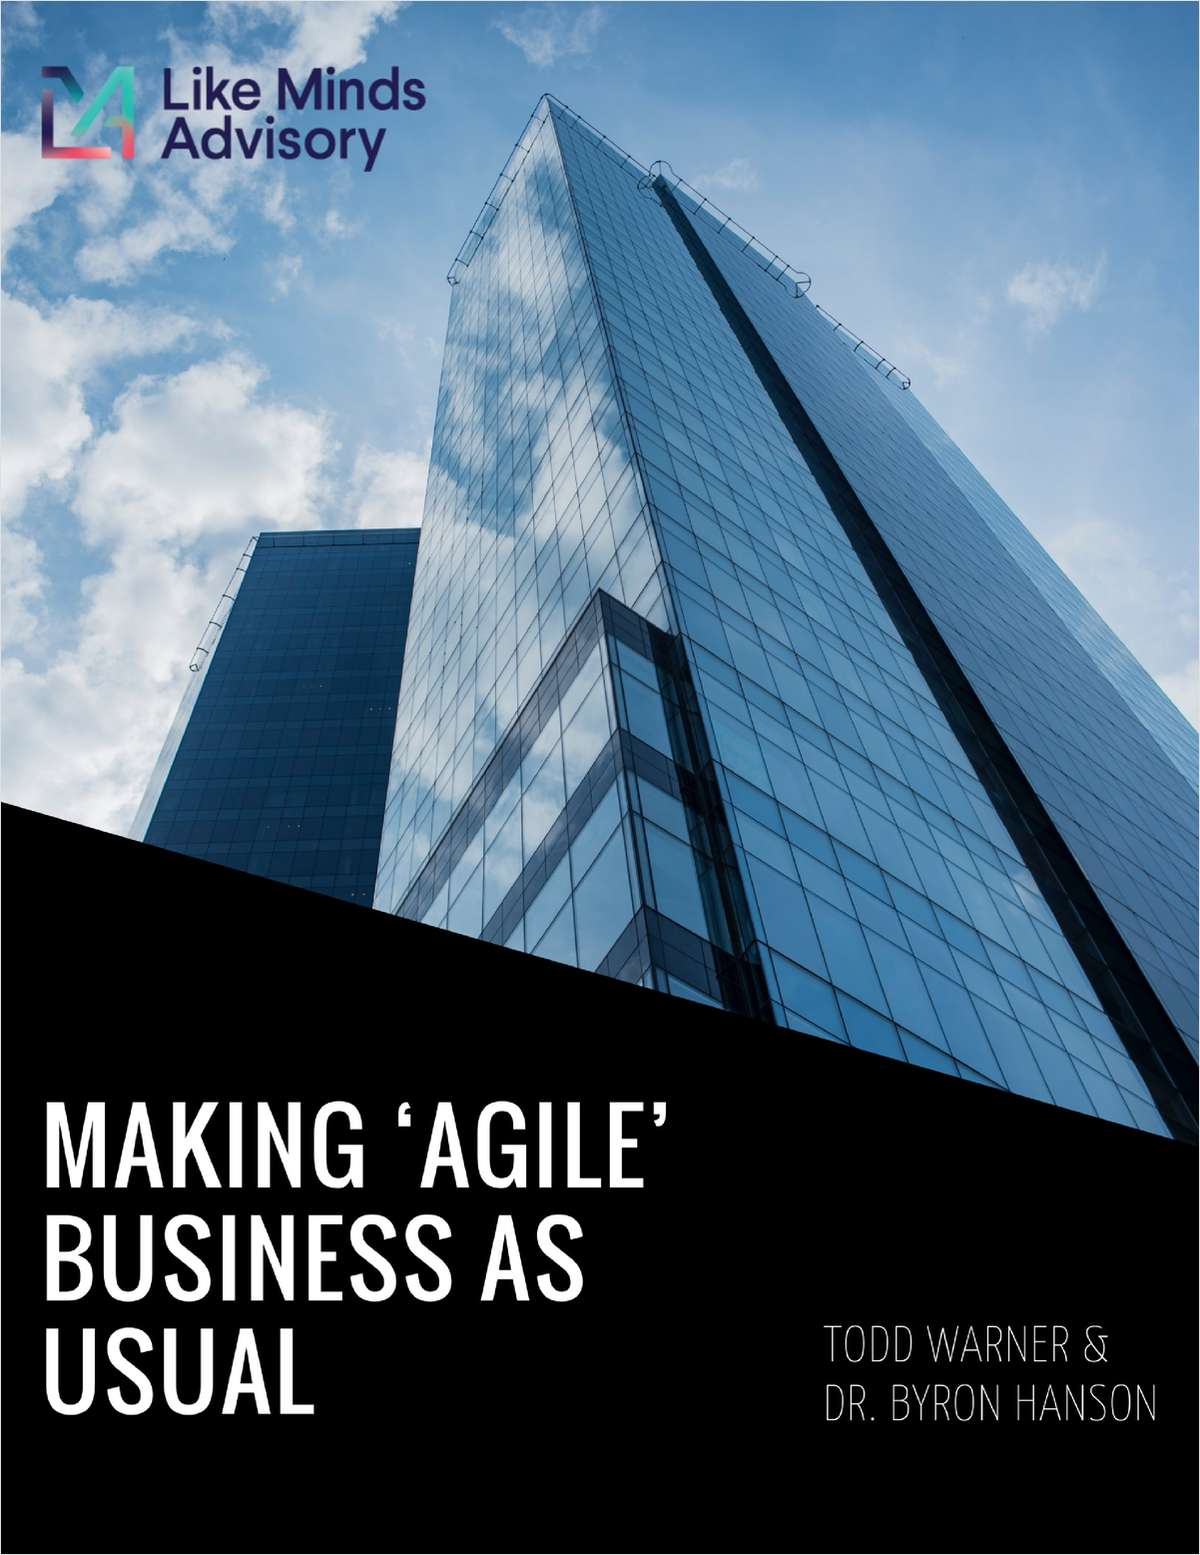 Making 'Agile' Business as Usual